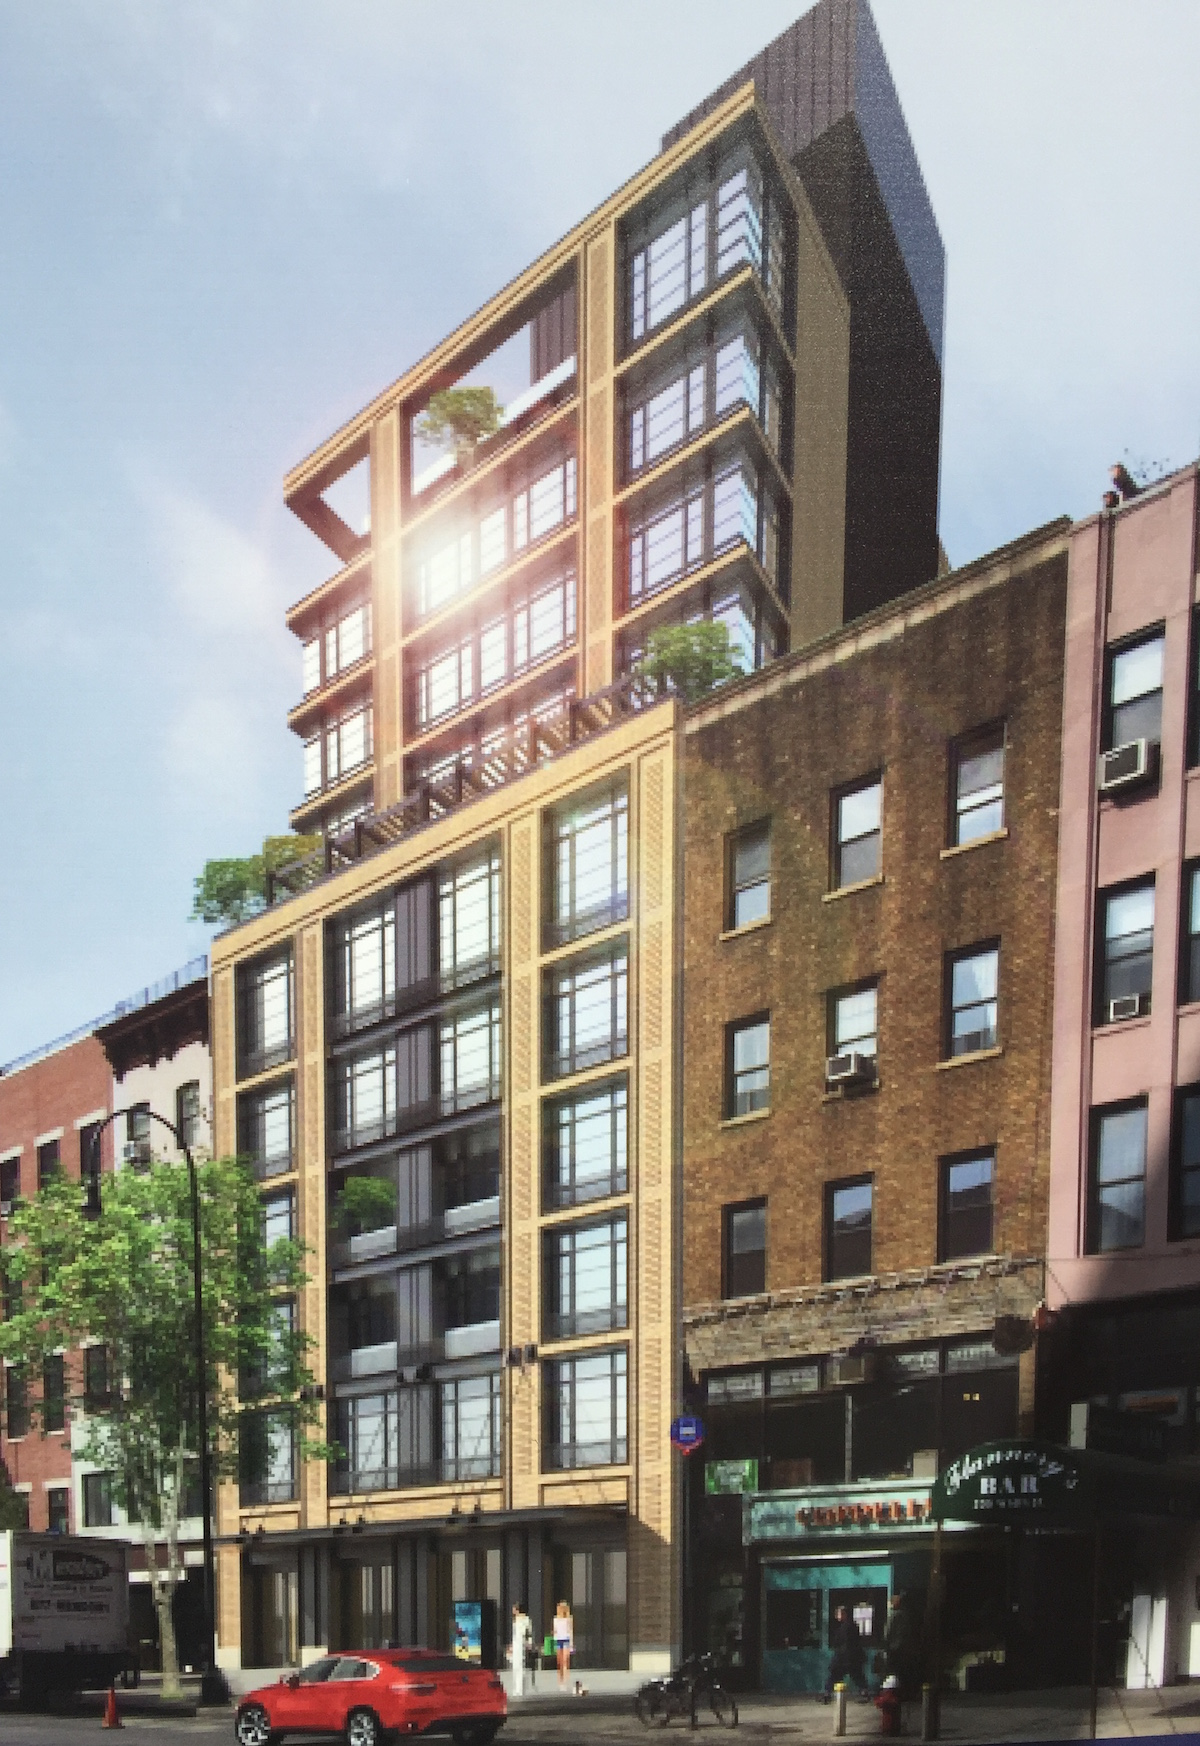 Construction rendering of 209 West 14th Street, photo by tipster